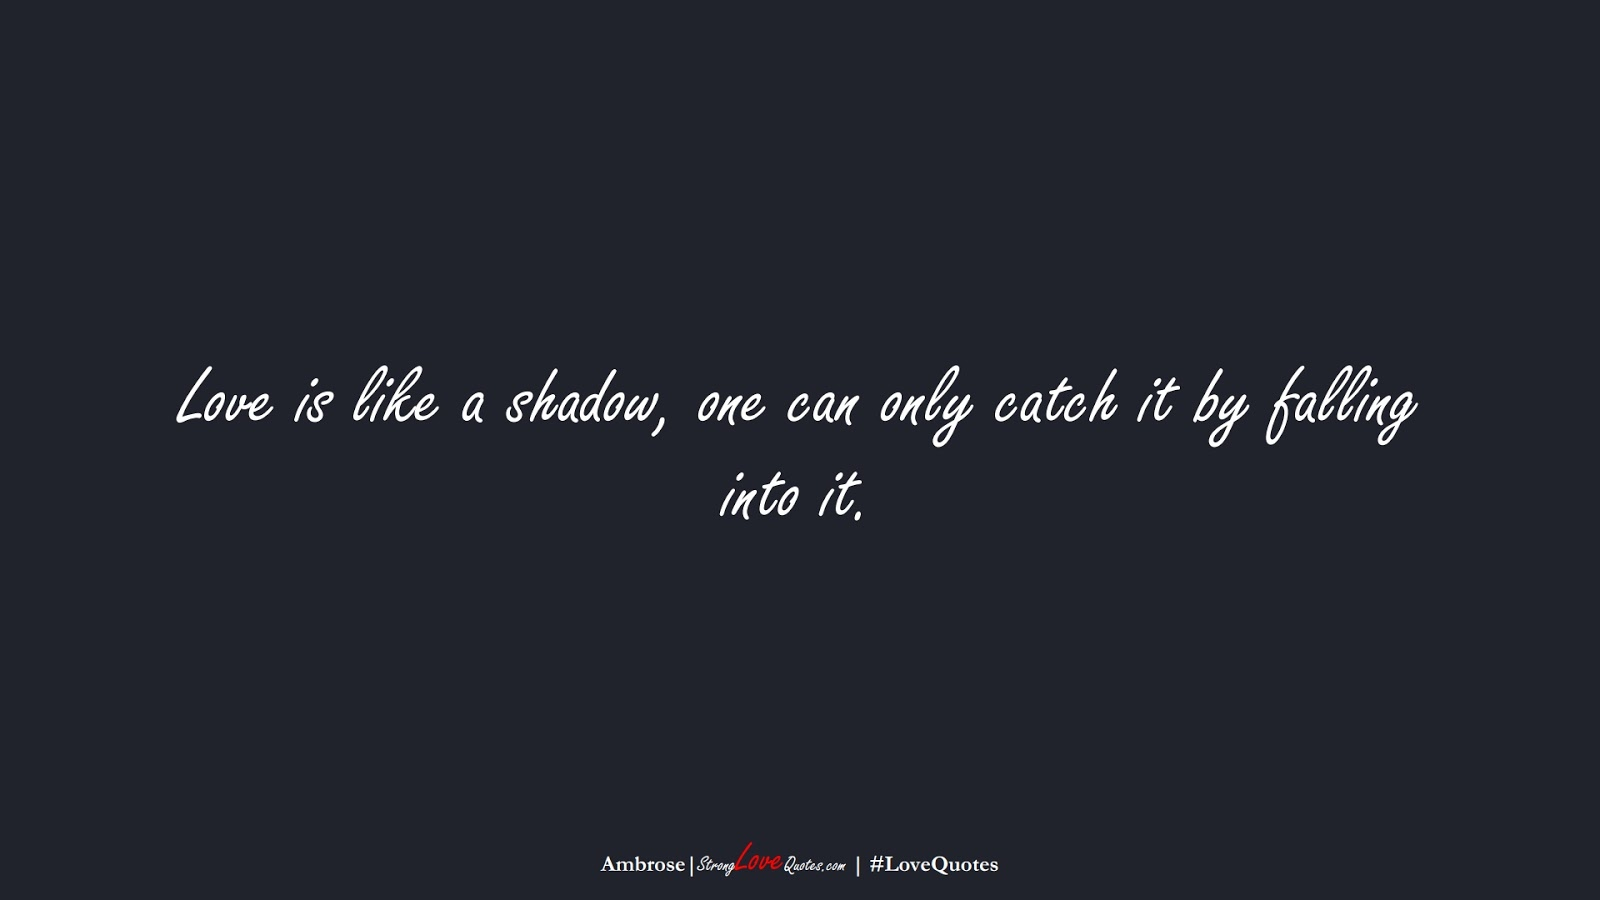 Love is like a shadow, one can only catch it by falling into it. (Ambrose);  #LoveQuotes